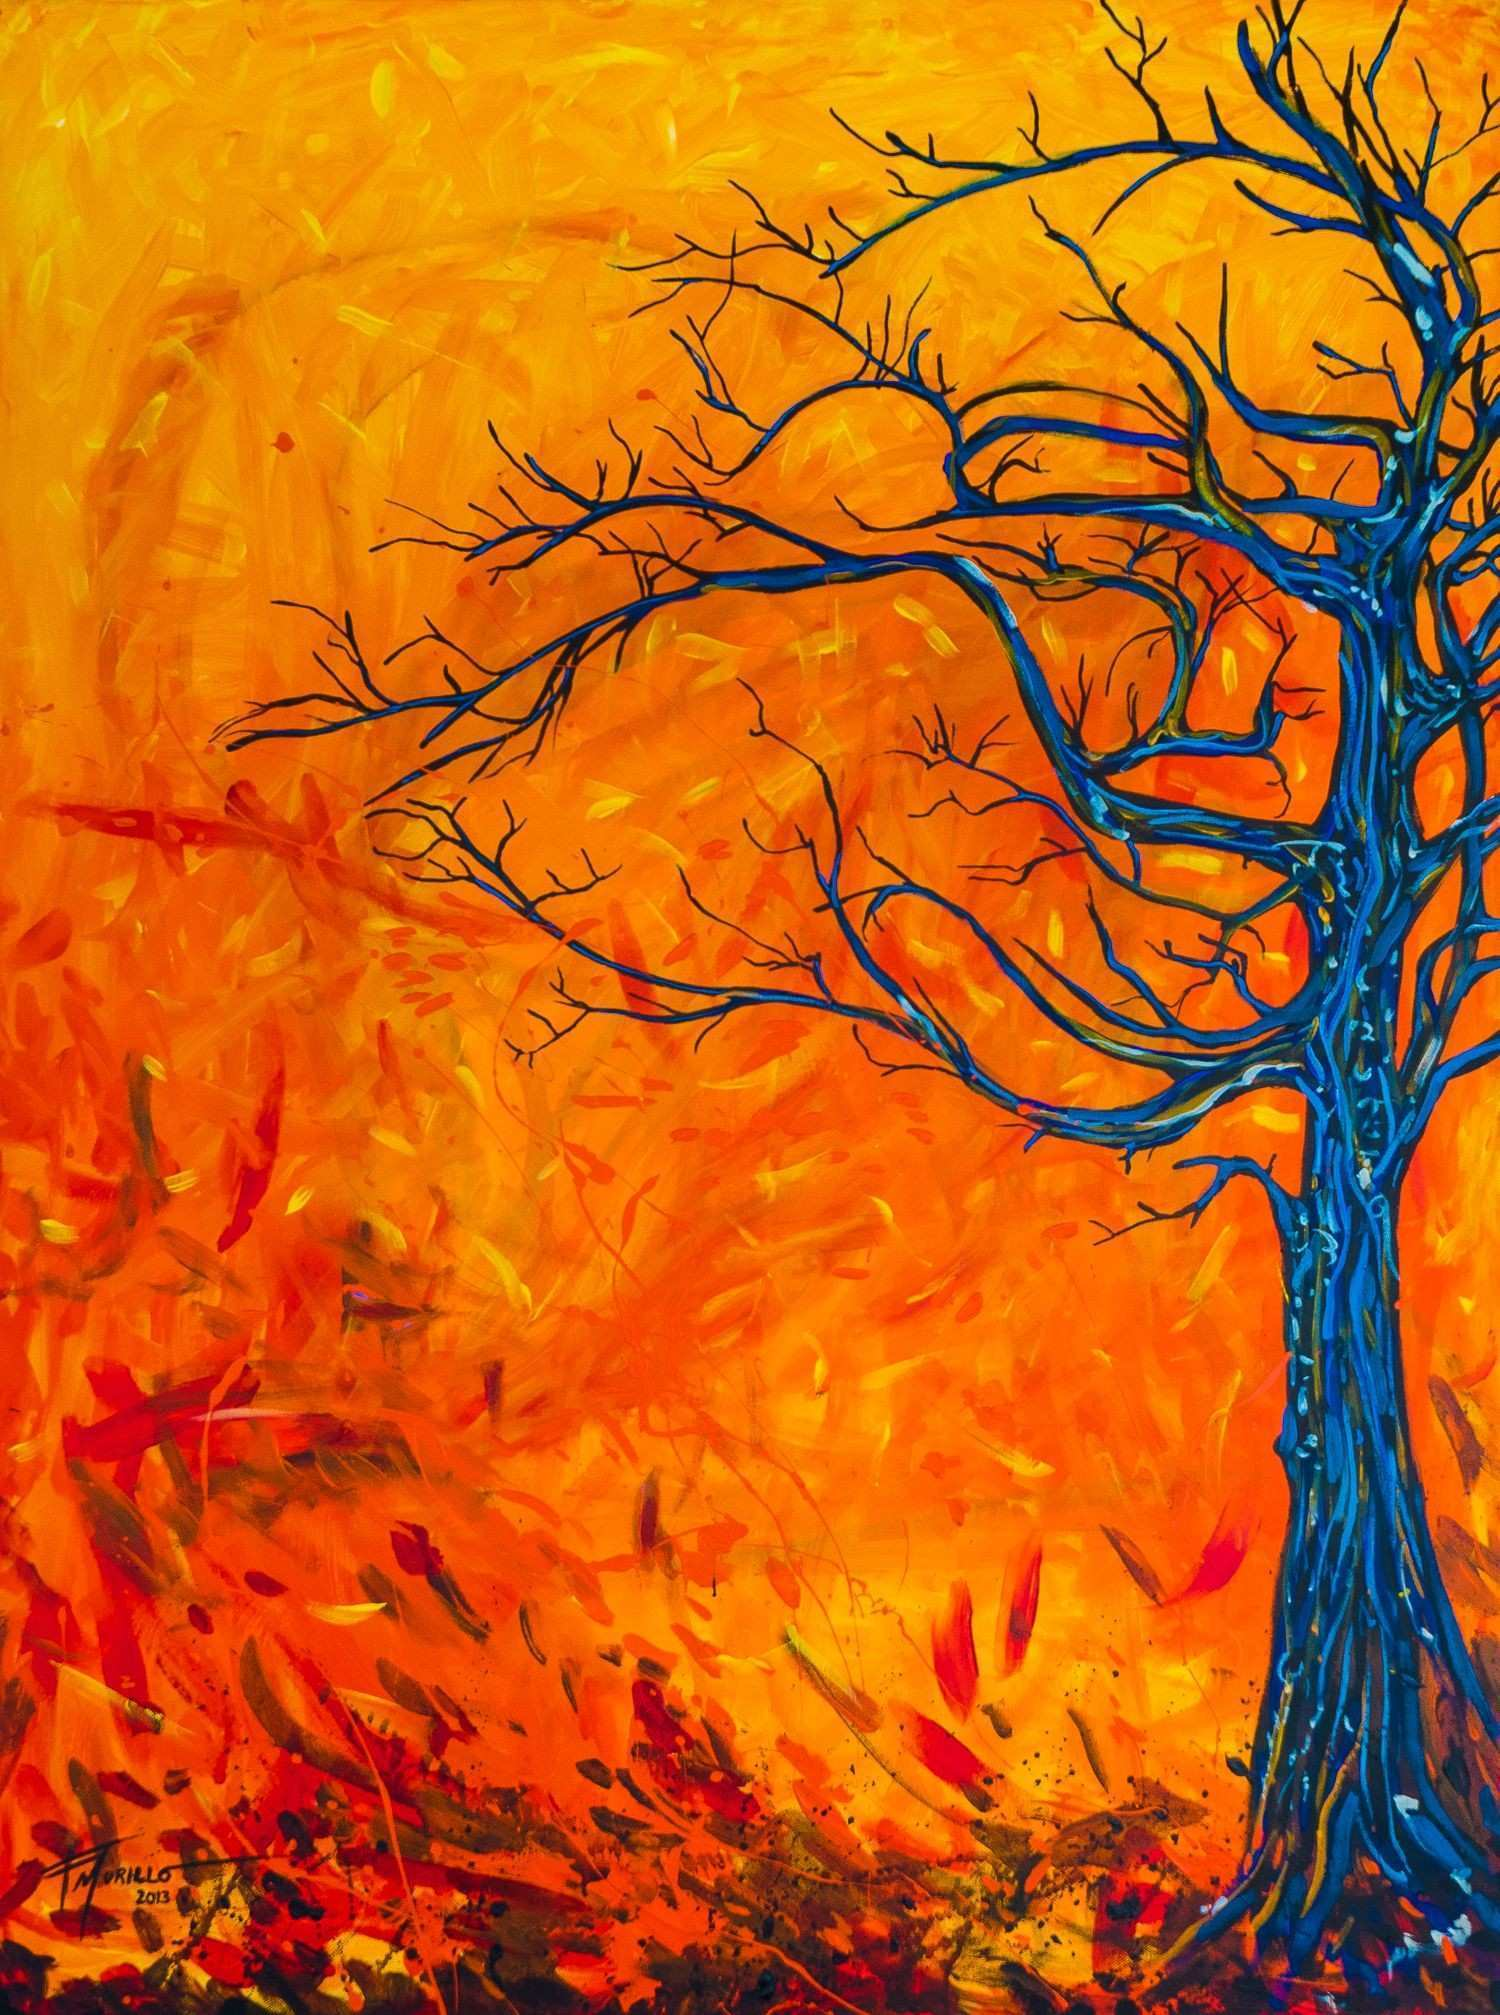 Viento acrylic painting 120x90 cm Depicting abstract